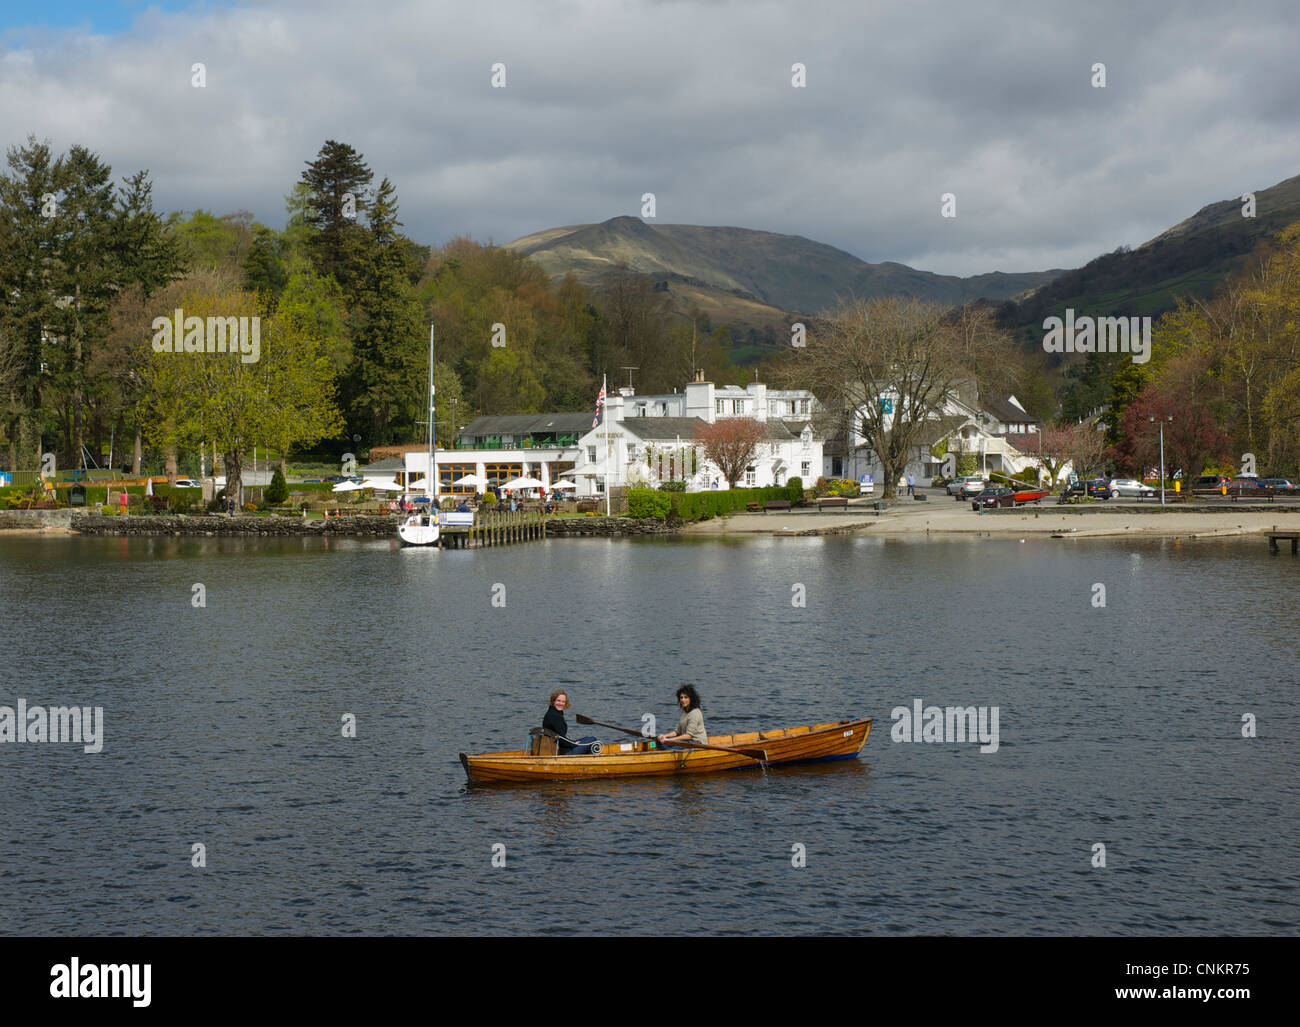 Two young women in a rowing boat on Lake Windermere, at Waterhead, Lake District National Park, Cumbria, England - Stock Image